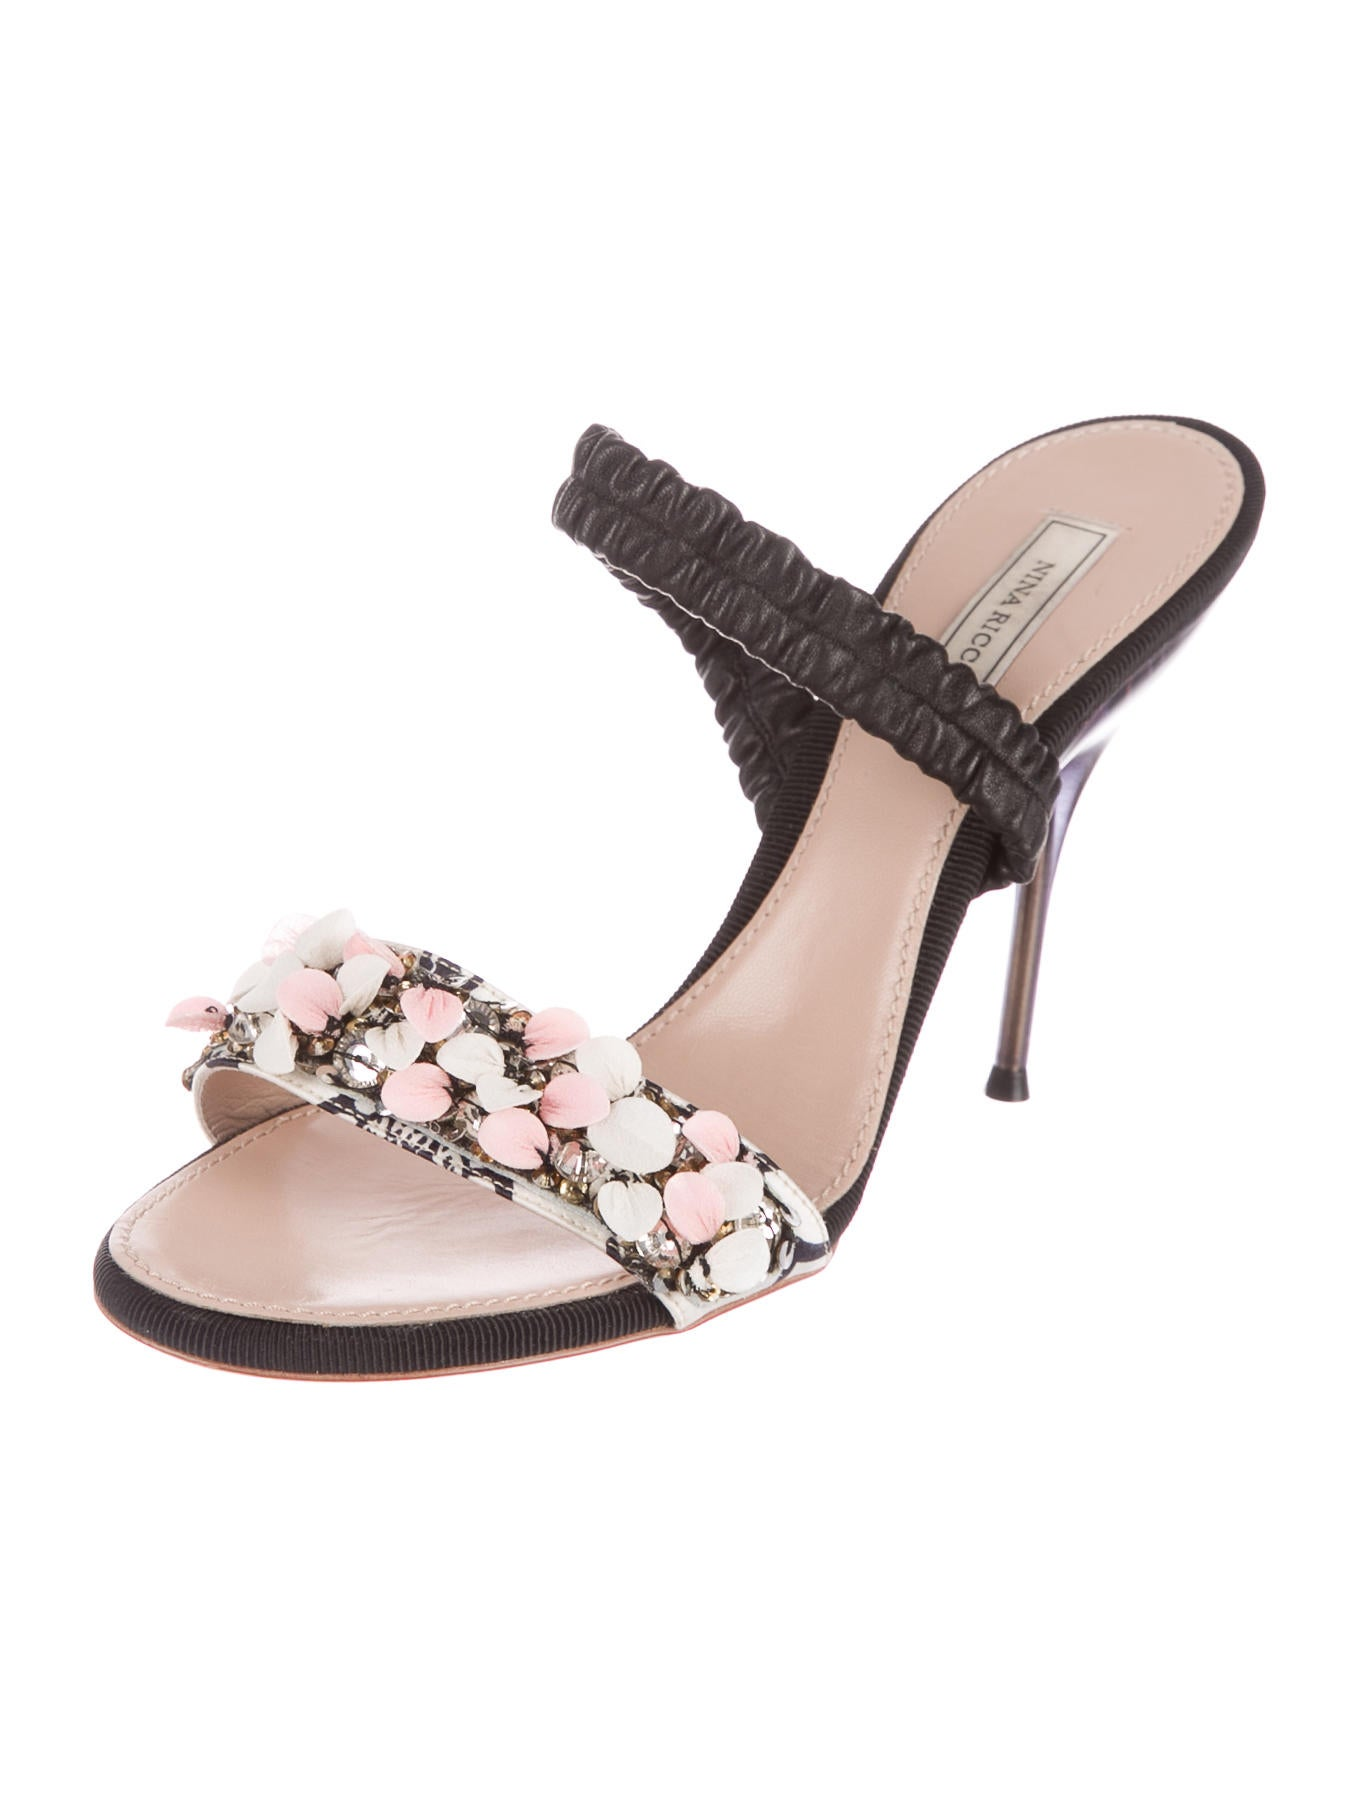 Nina Ricci Sequin-Embellished Leather Sandals free shipping genuine tYplZZ